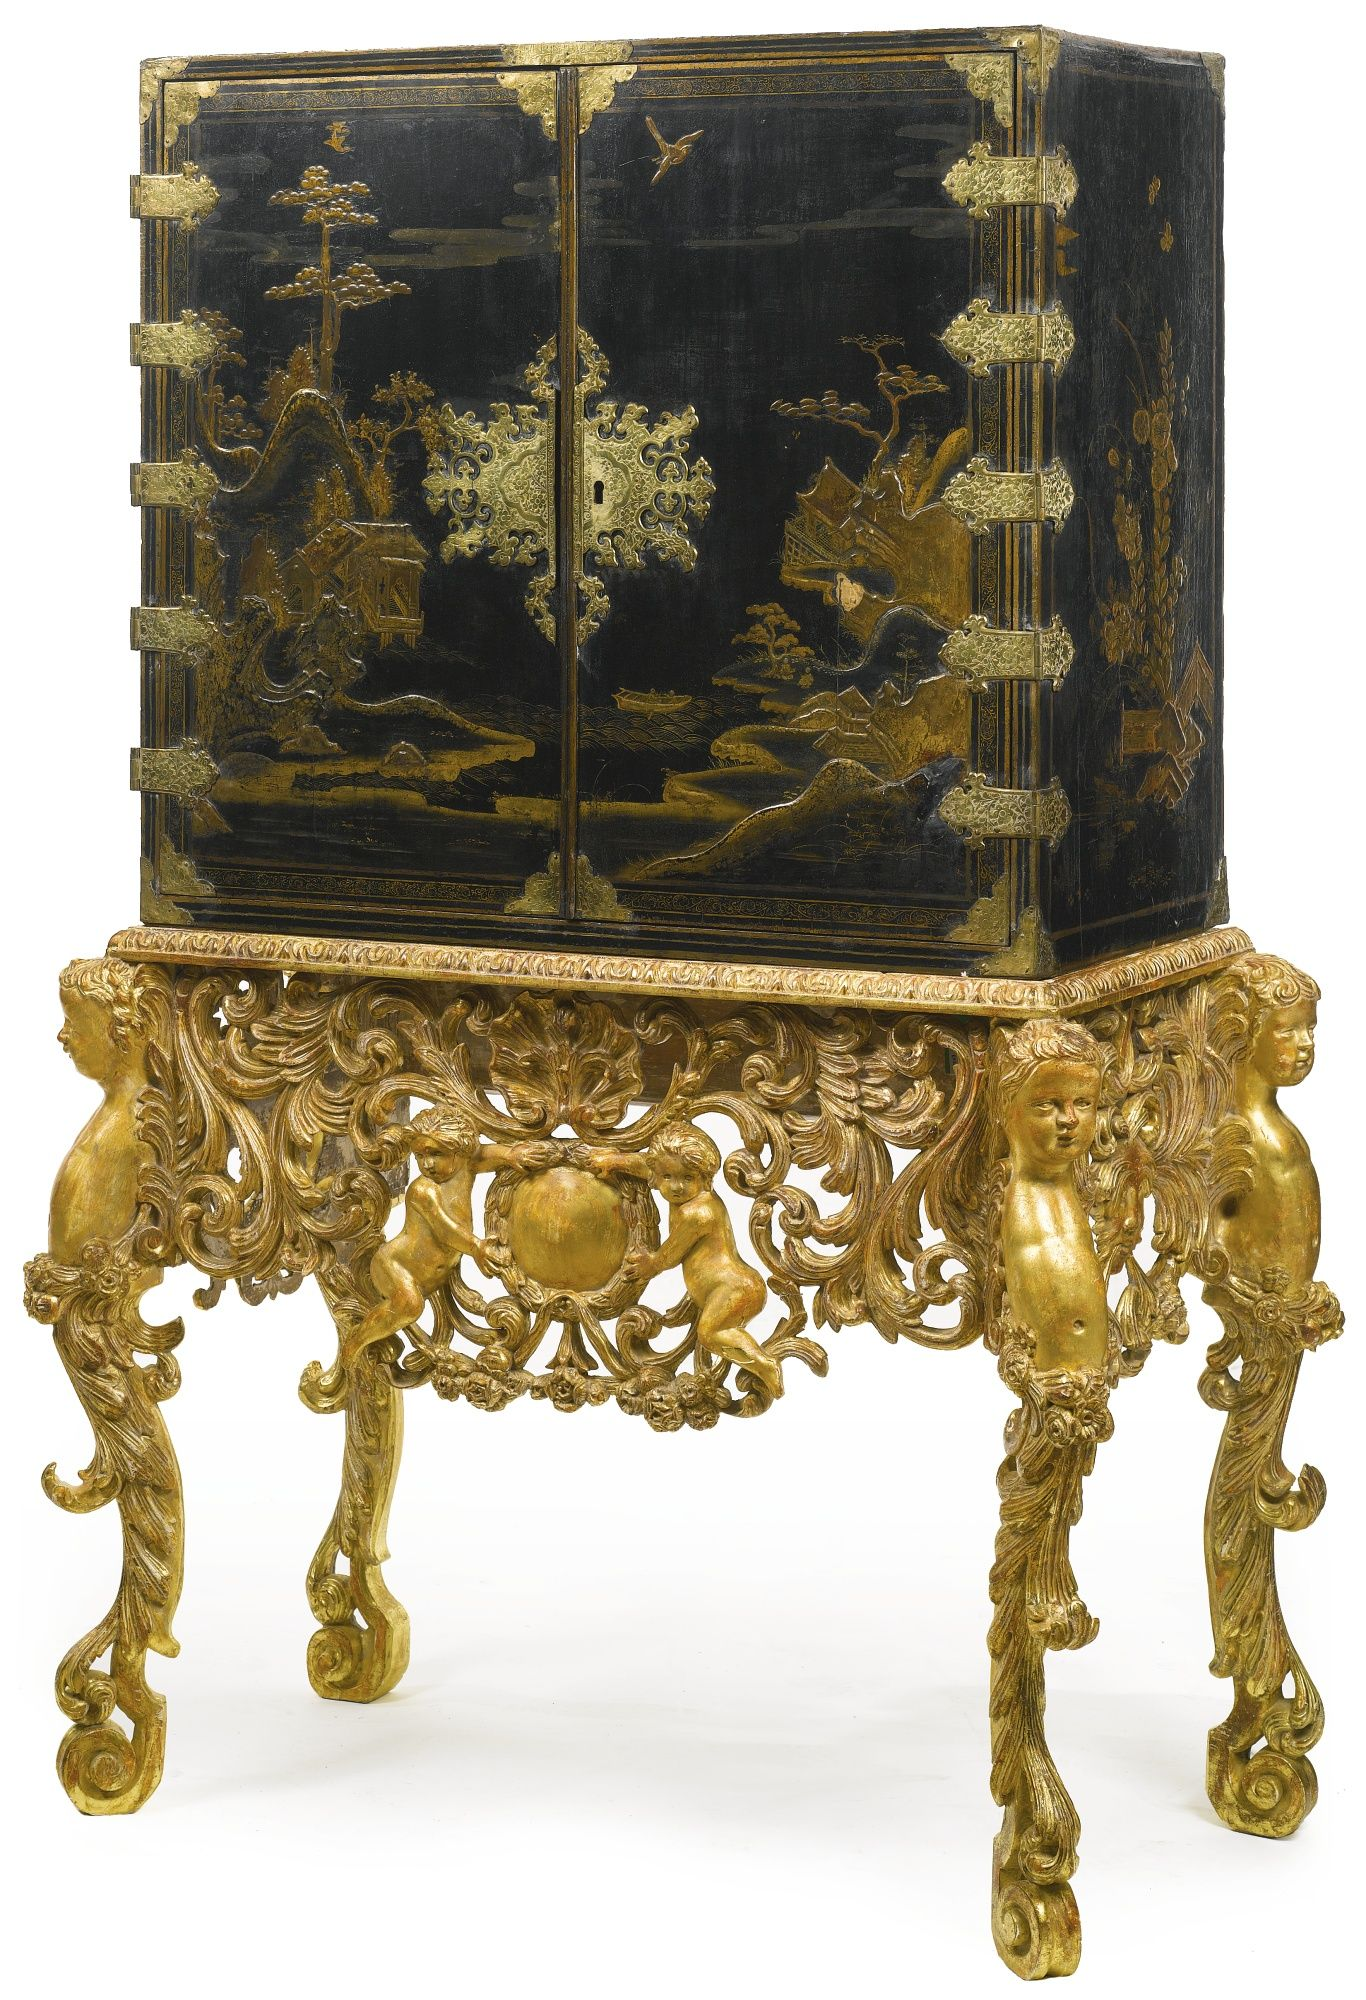 A WILLIAM AND MARY PARCEL GILT BLACK JAPANNED CABINET ON LATER